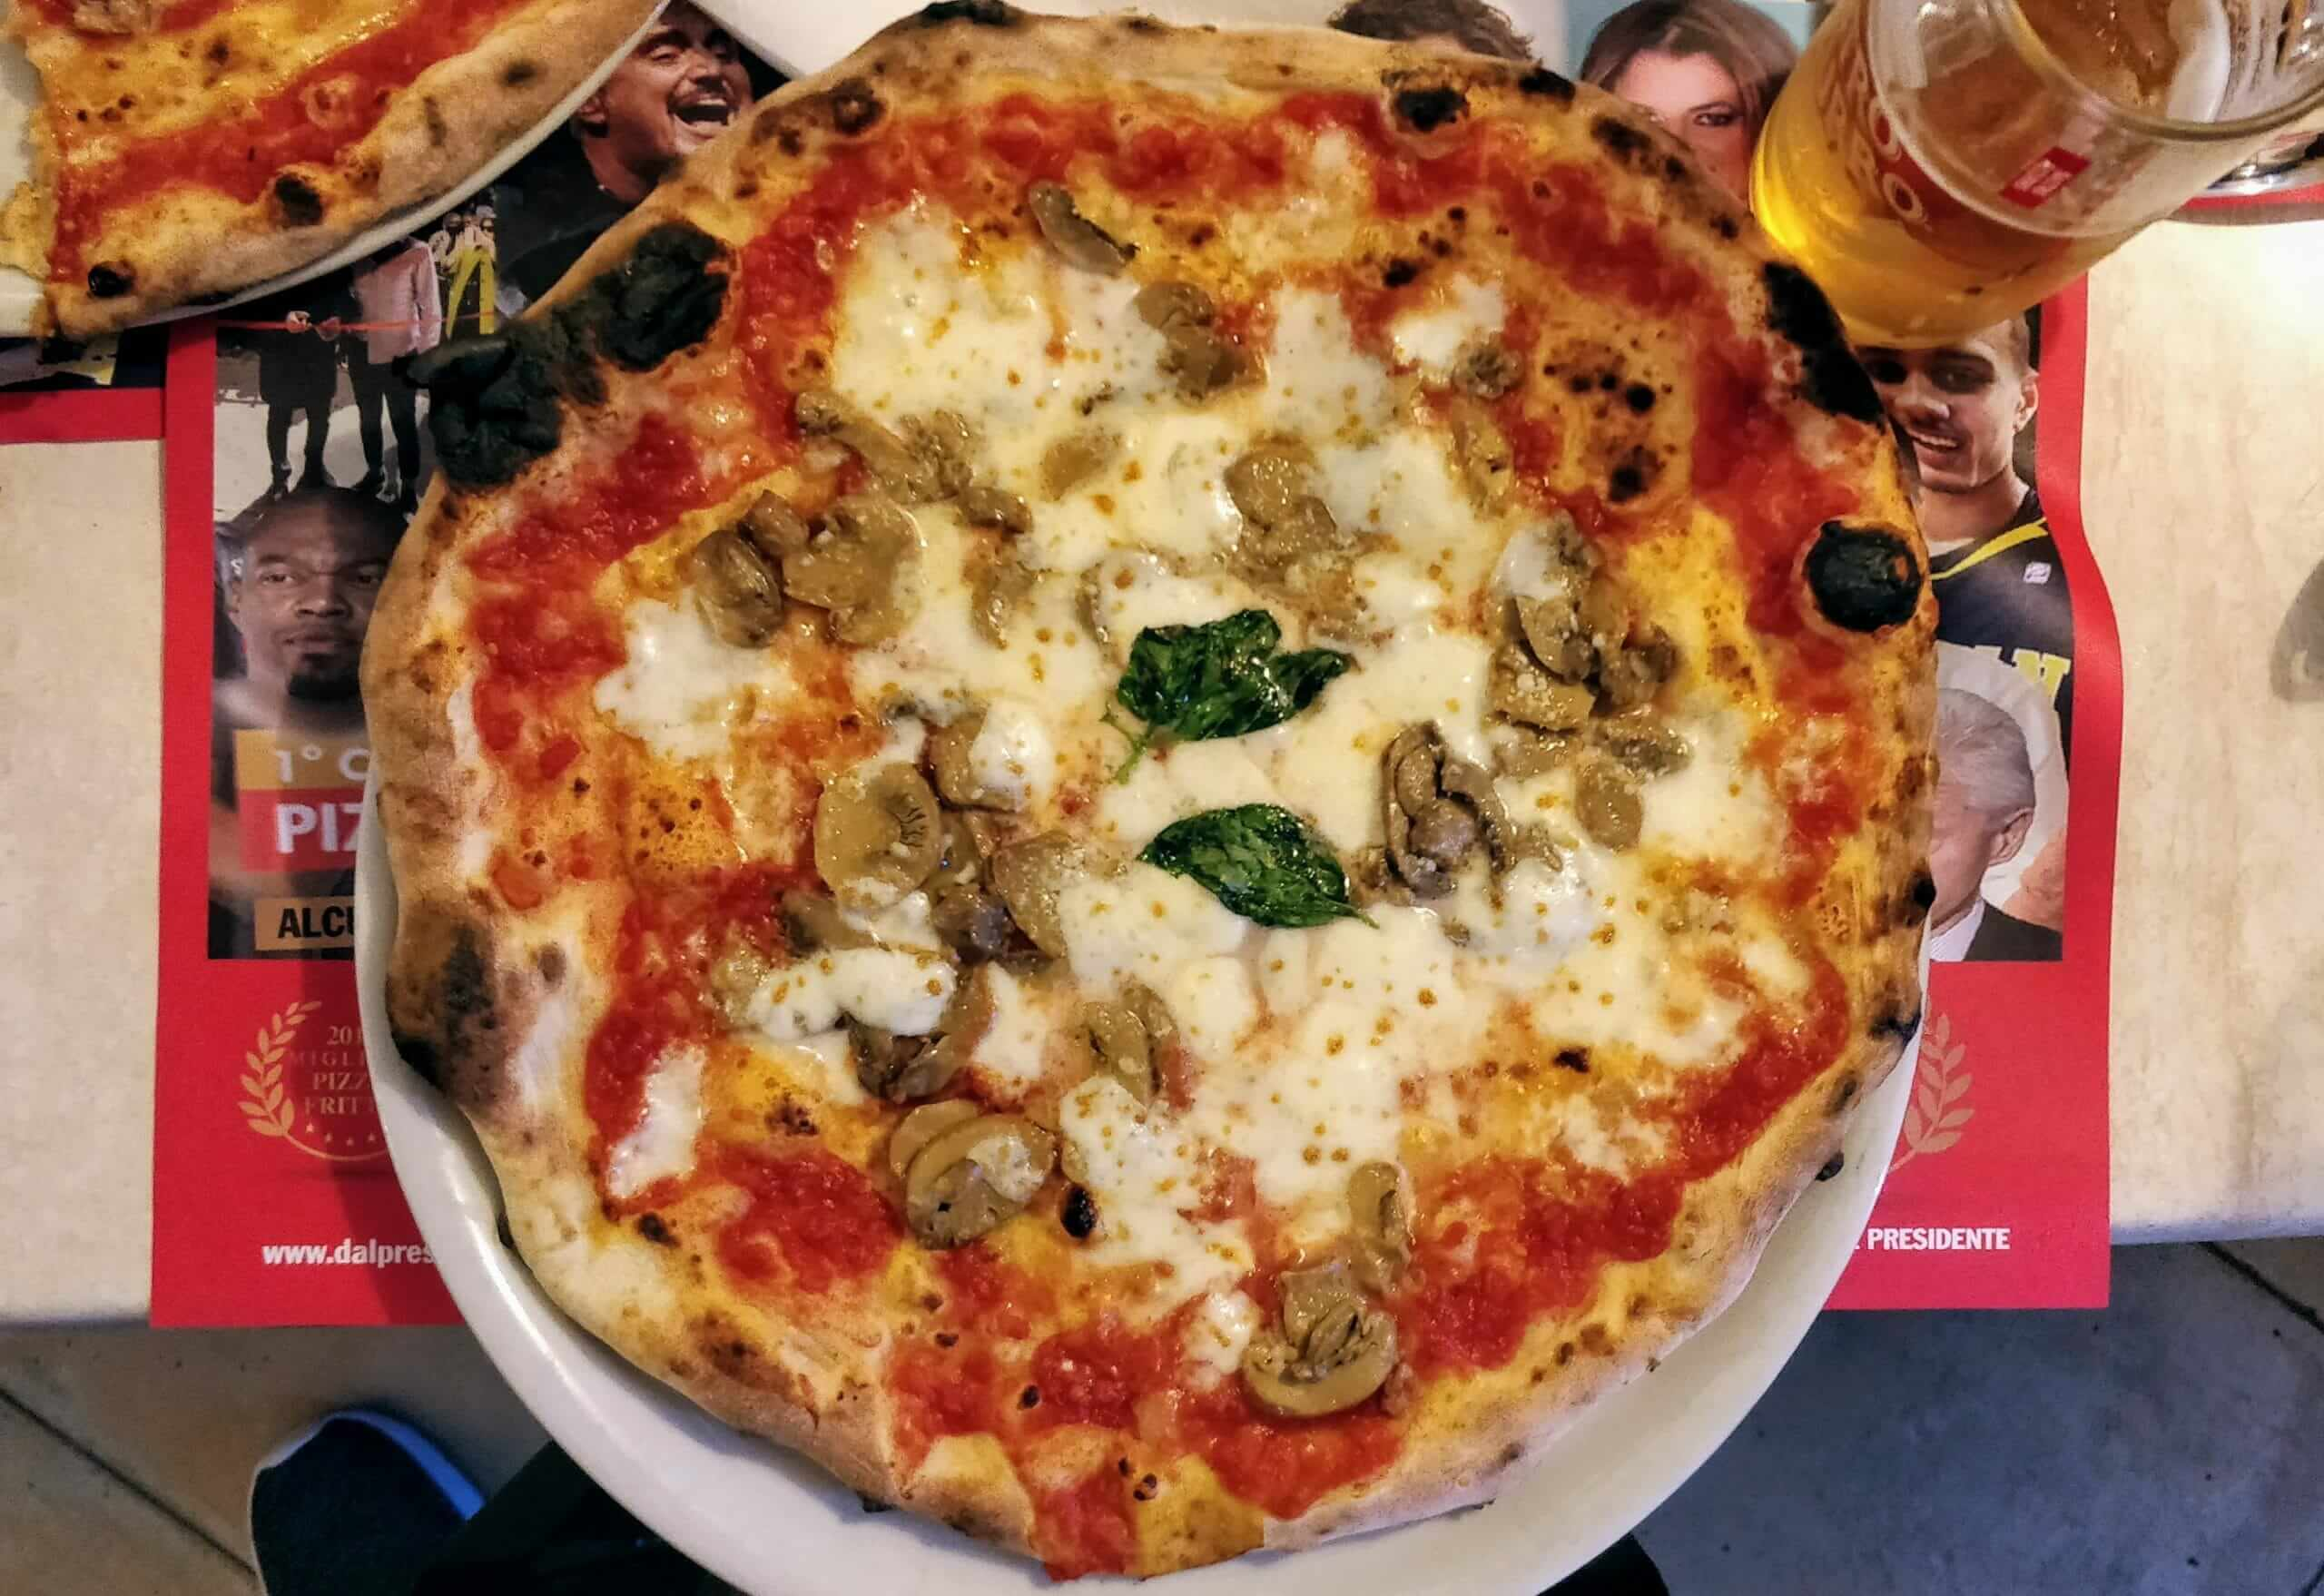 Margherita and mushroom pizza pie from Dal Presidente Pizzeria in Naples